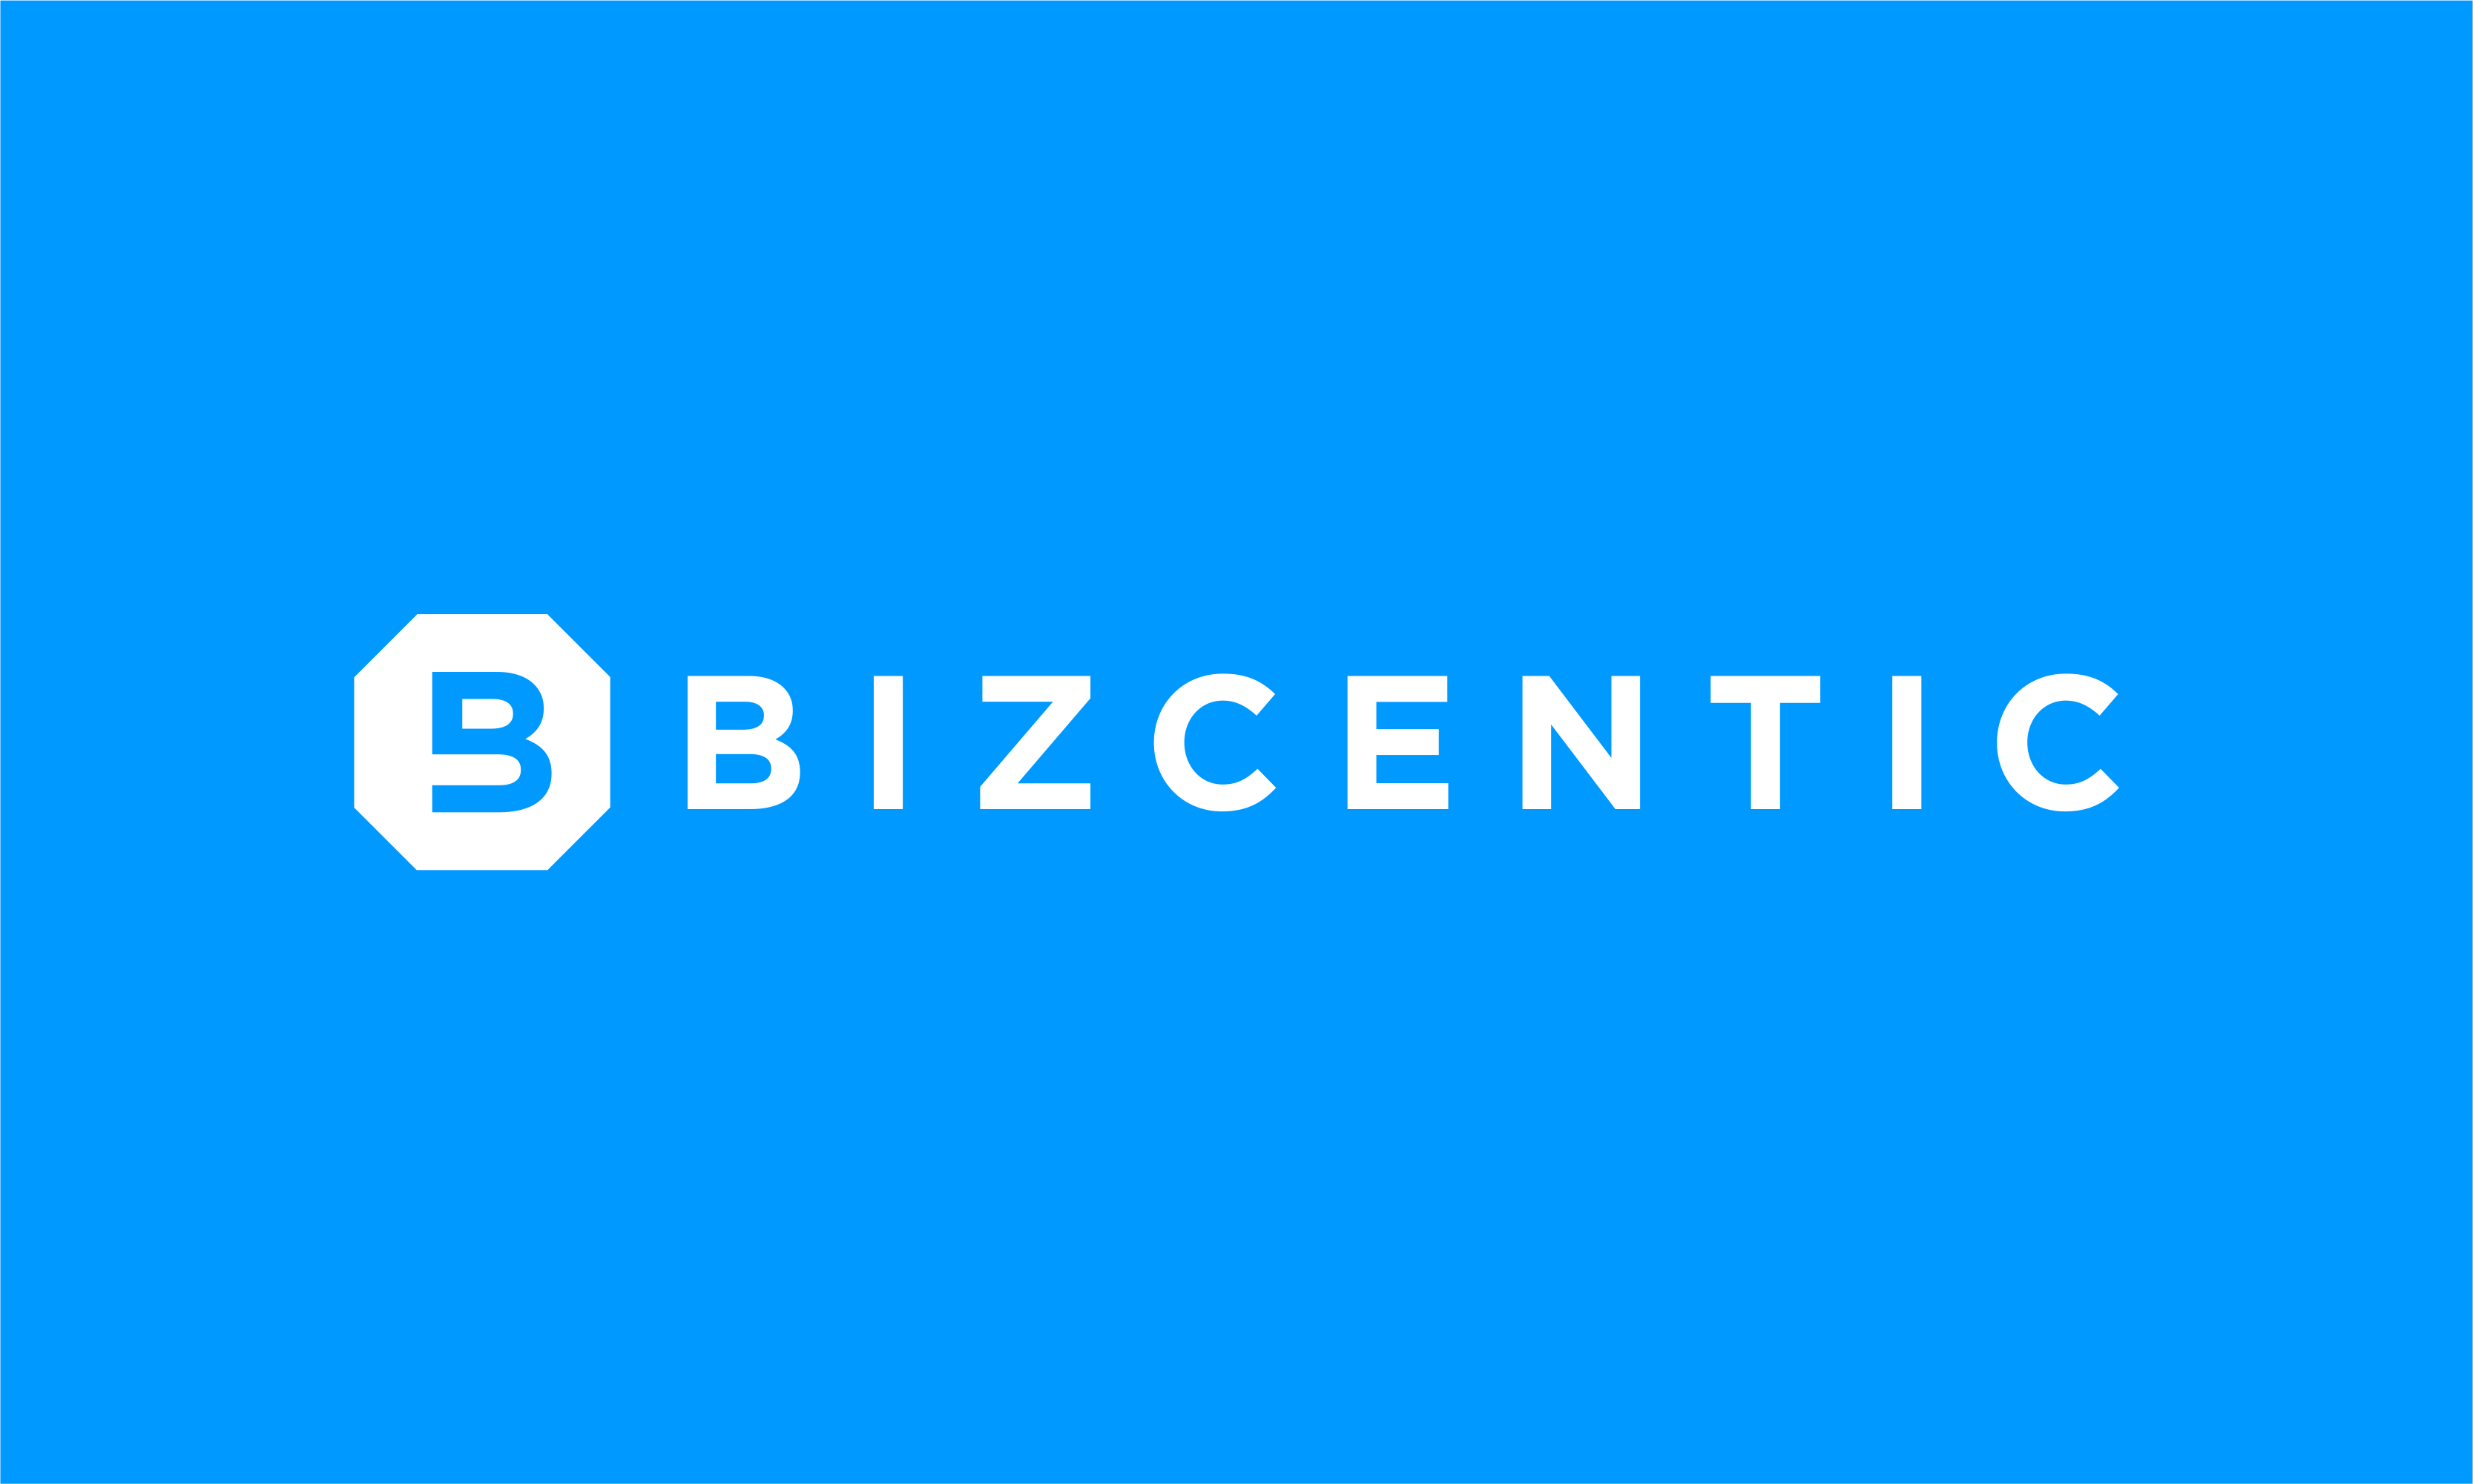 Bizcentic